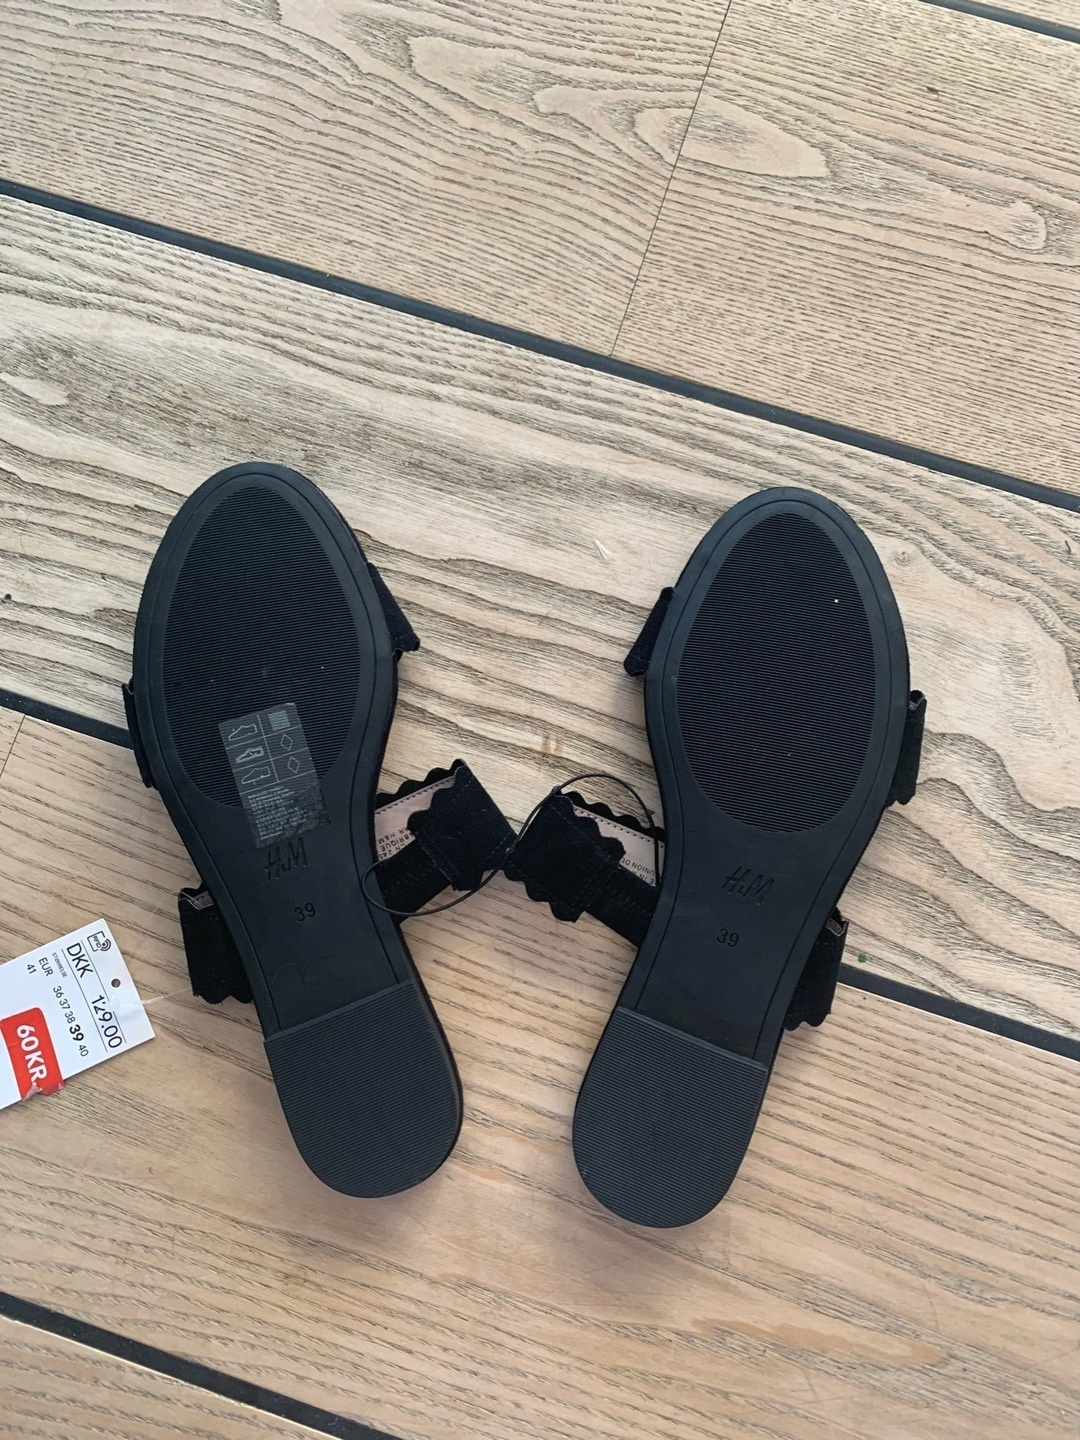 Women's sandals & slippers - H&M photo 2